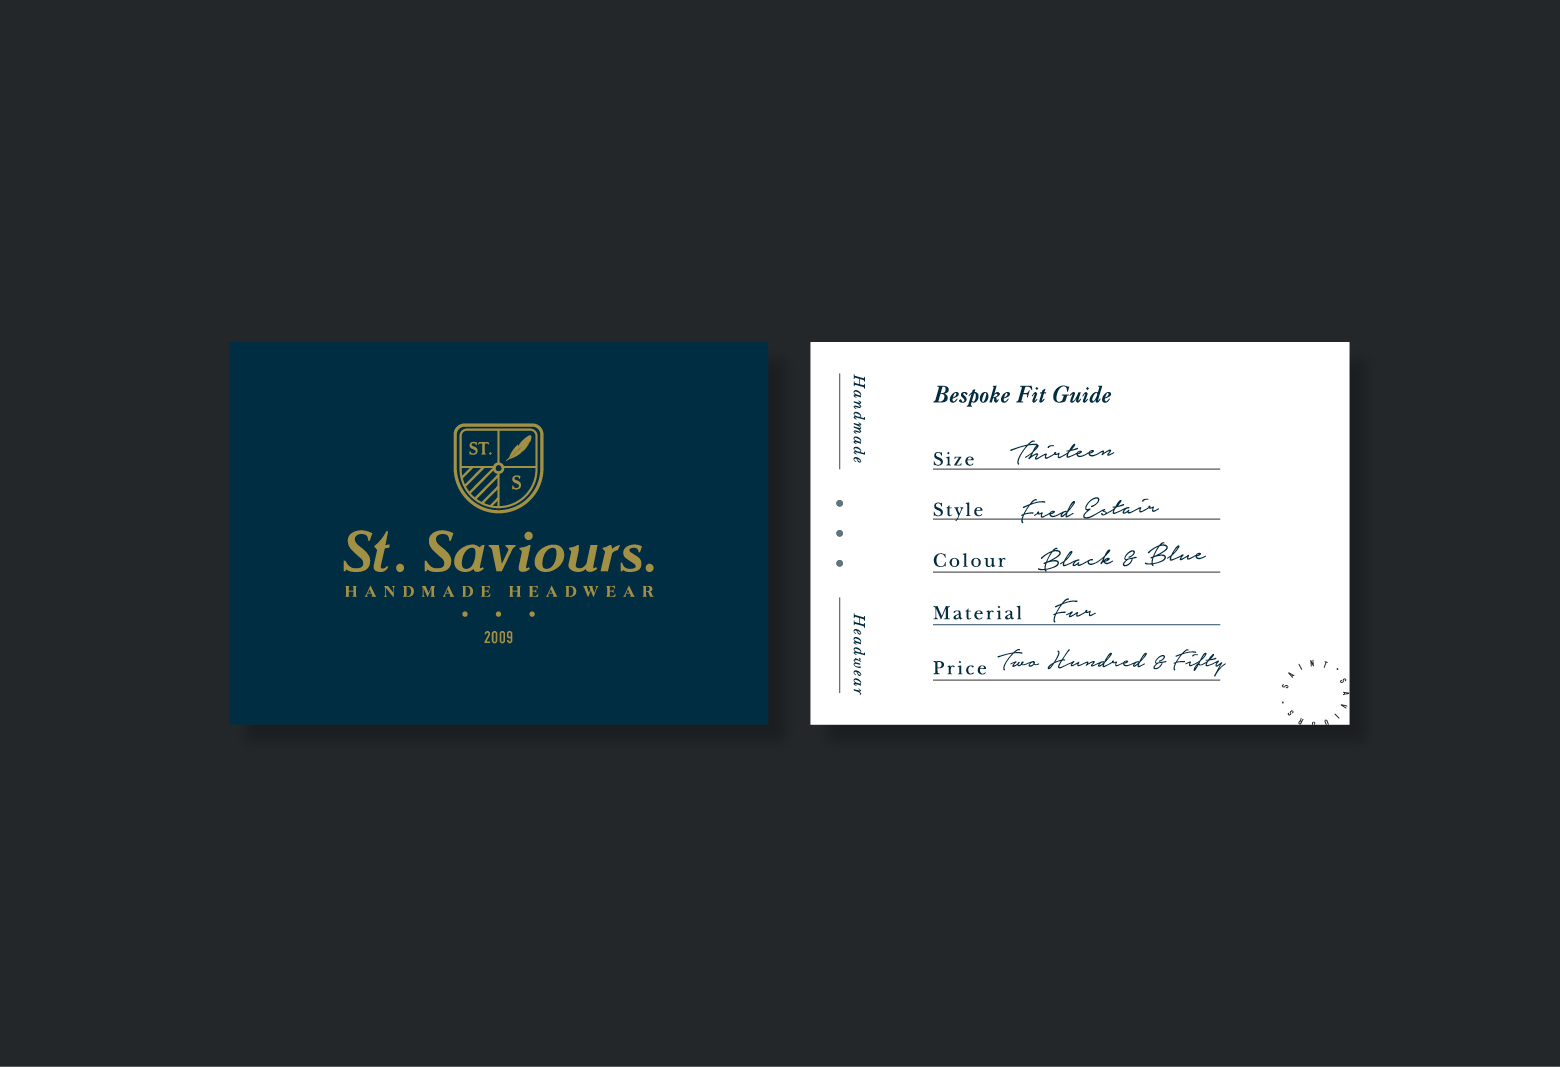 St. Saviours_website_18